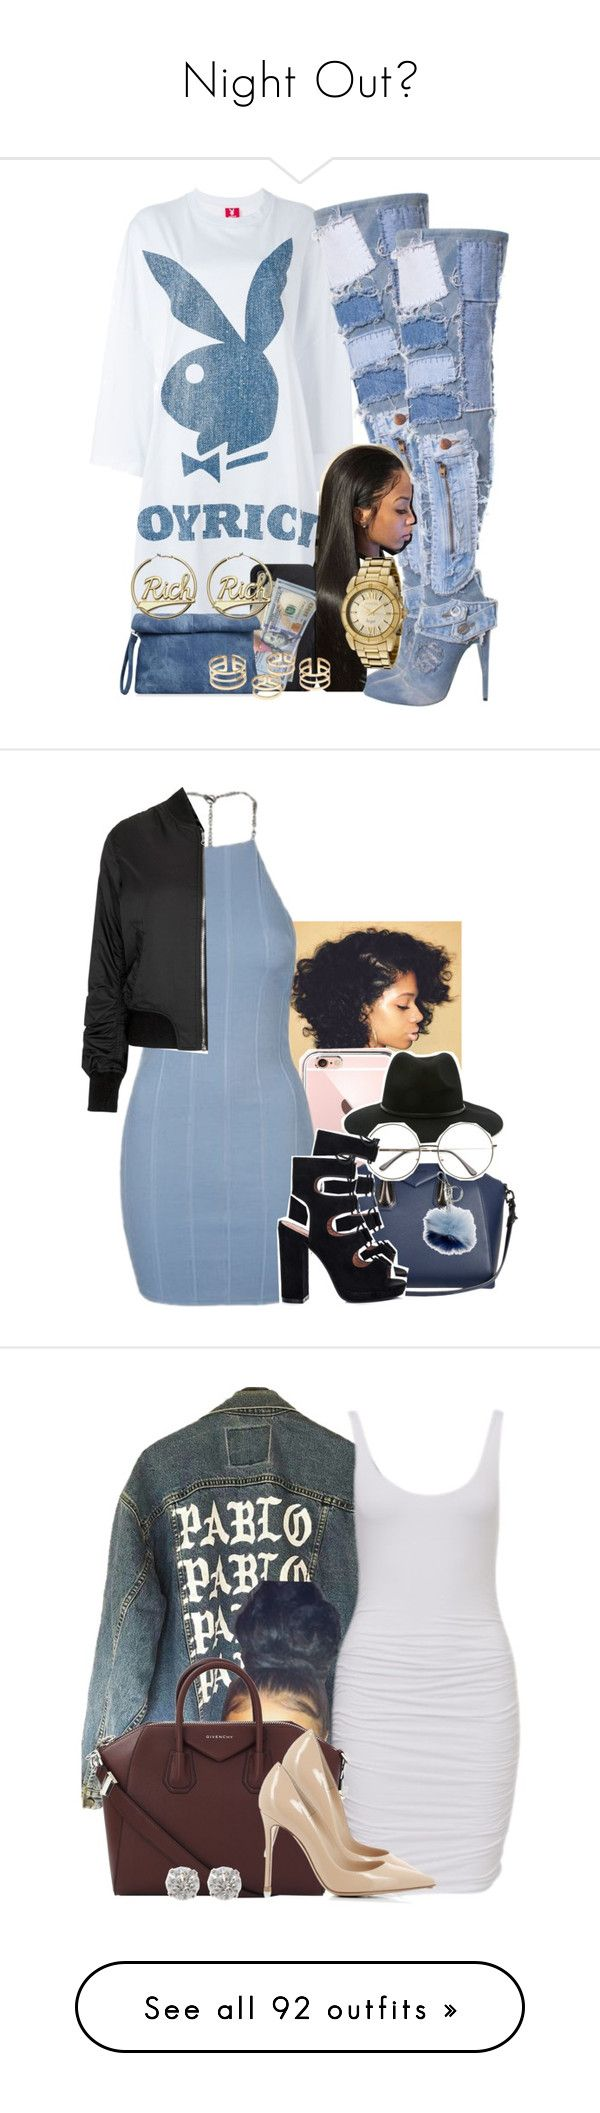 """""""Night Out"""" by heavensincere ❤ liked on Polyvore featuring Joyrich, Invicta, Givenchy, Topshop, Forever 21, Michael Kors, Gianvito Rossi, River Island, Yves Saint Laurent and Mura"""